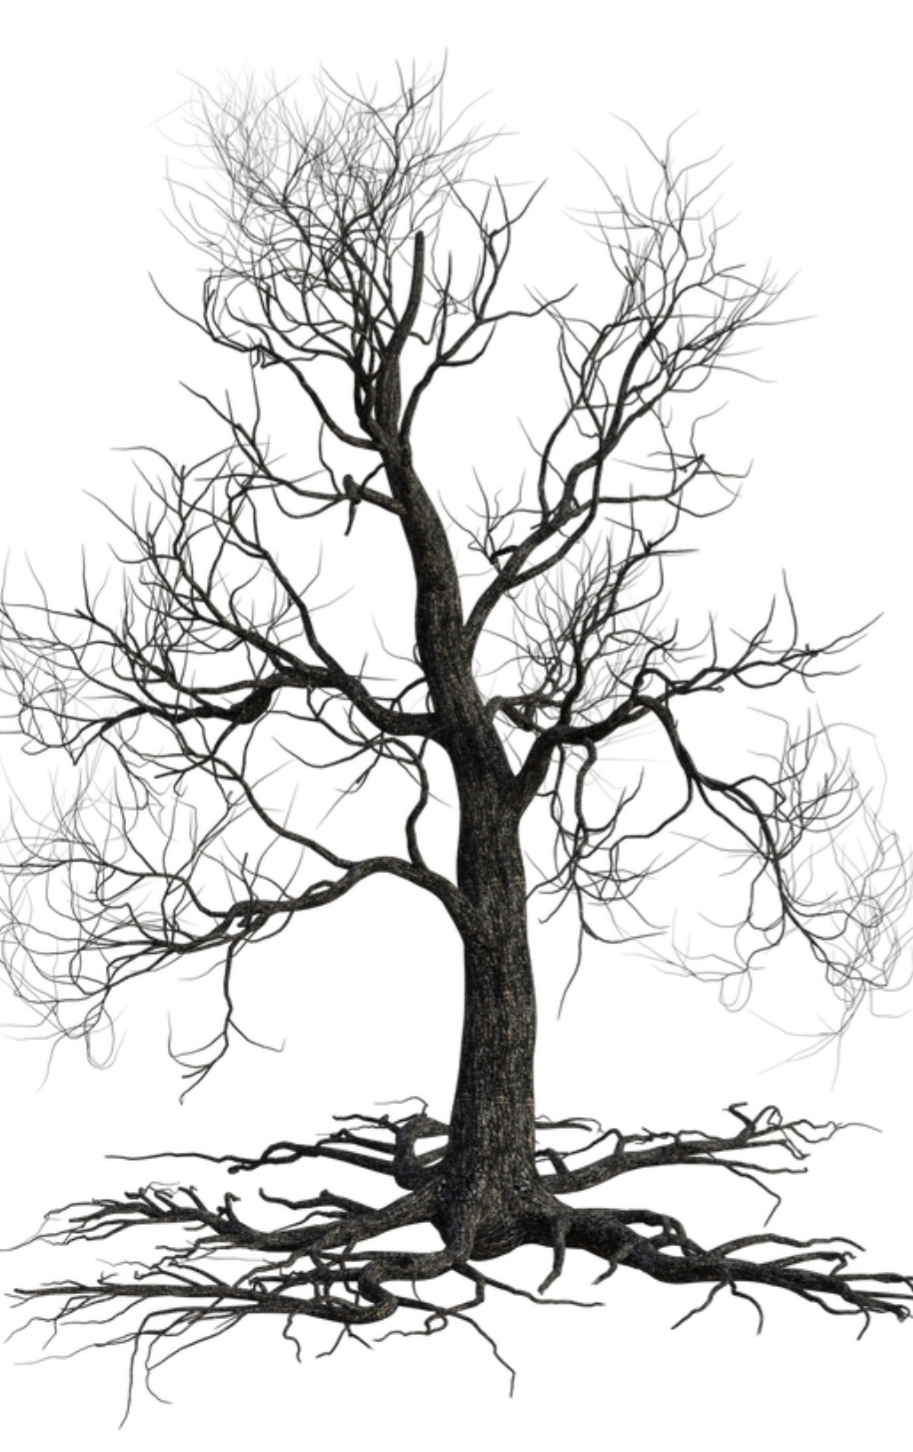 We Are All Like a Tree.